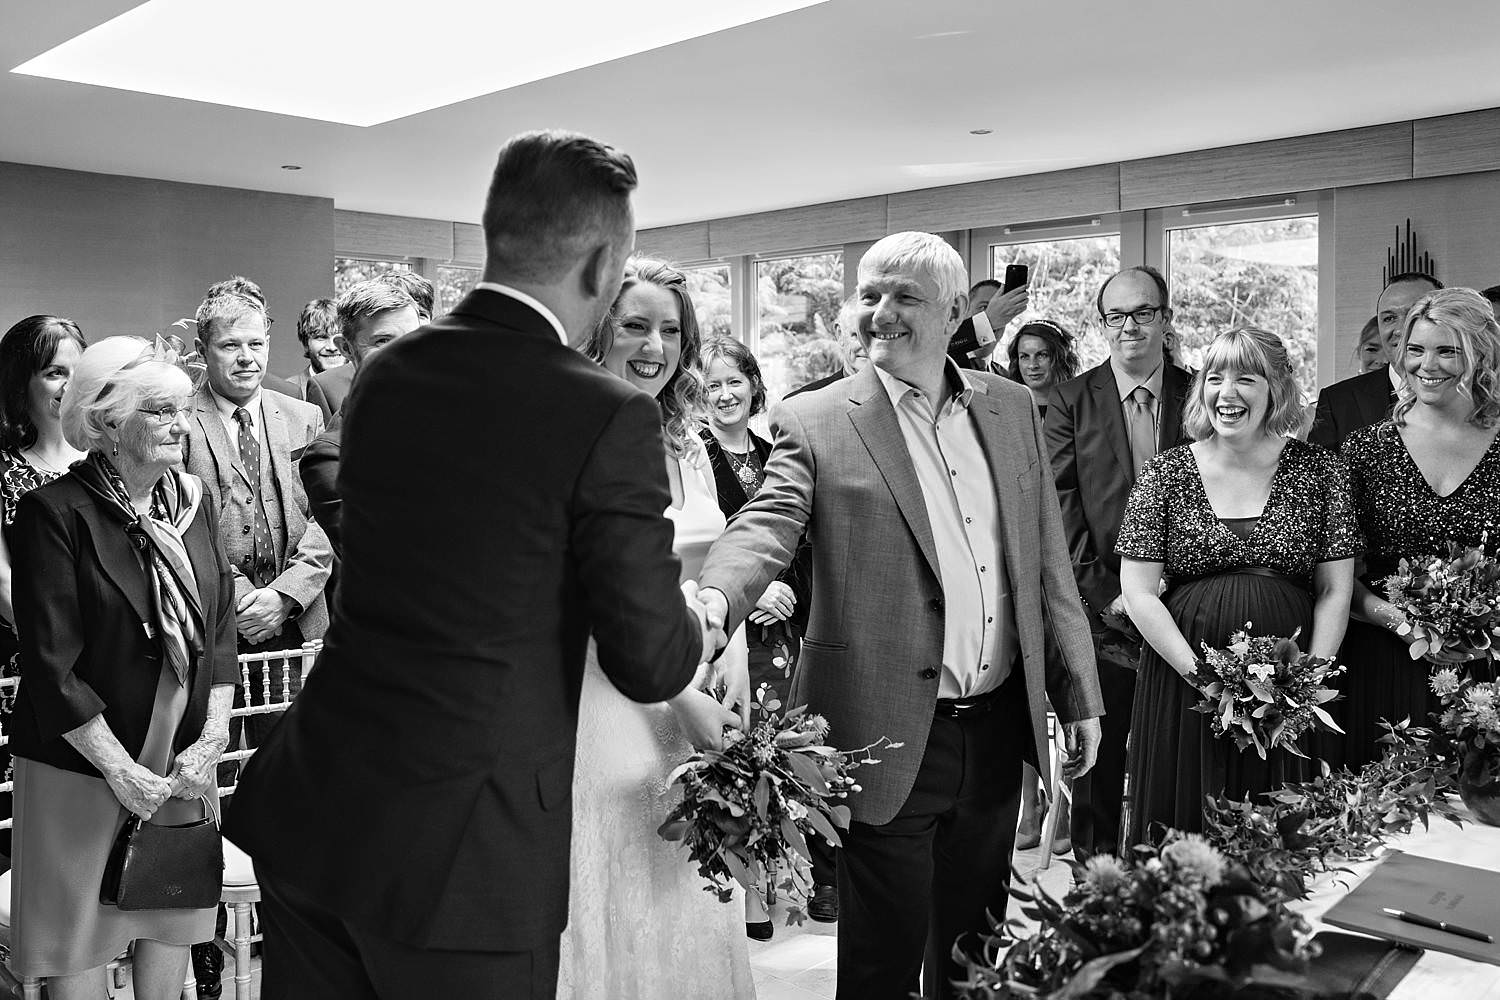 Bride's dad shaking the grooms hand as he gives his daughter away